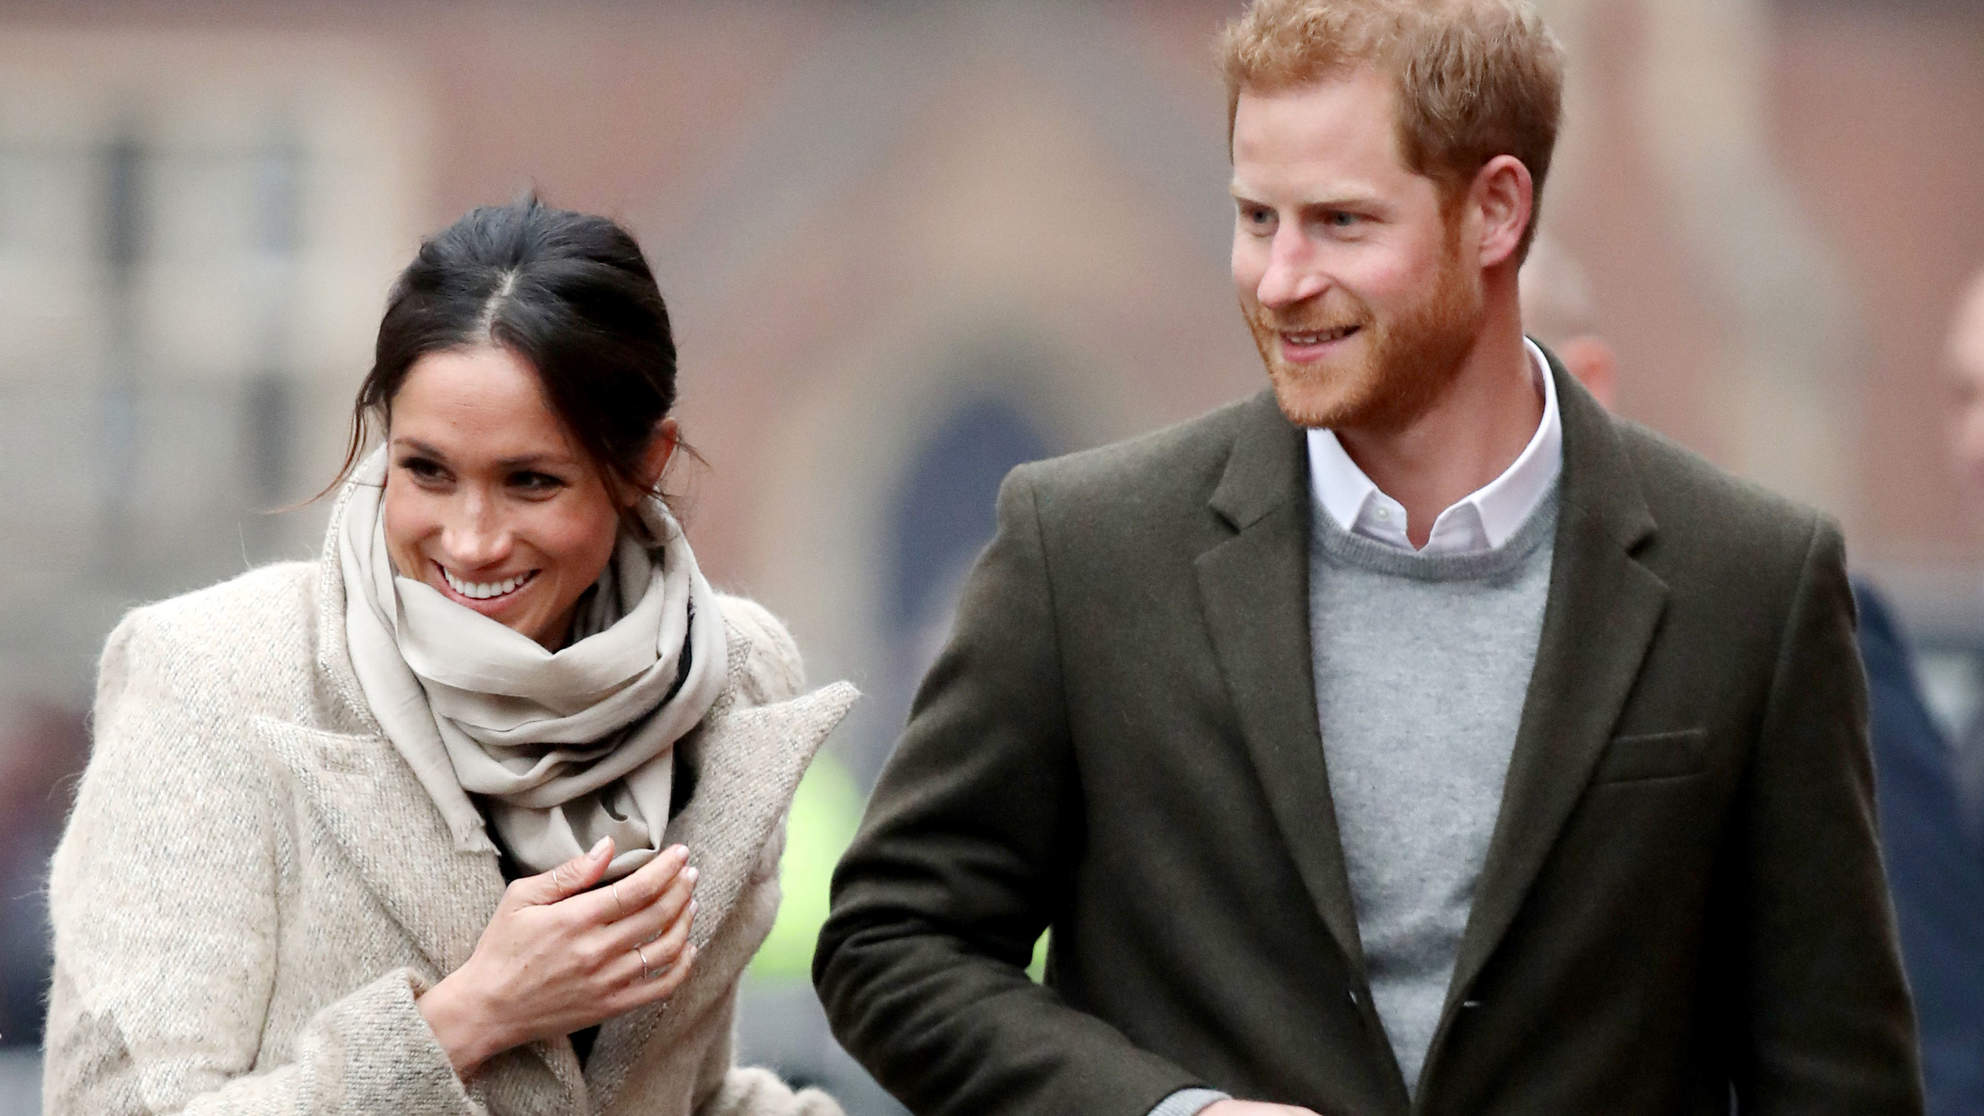 Clone of Prince Harry and Meghan Markle Make Their First 2018 Appearance in the Coziest Neutrals